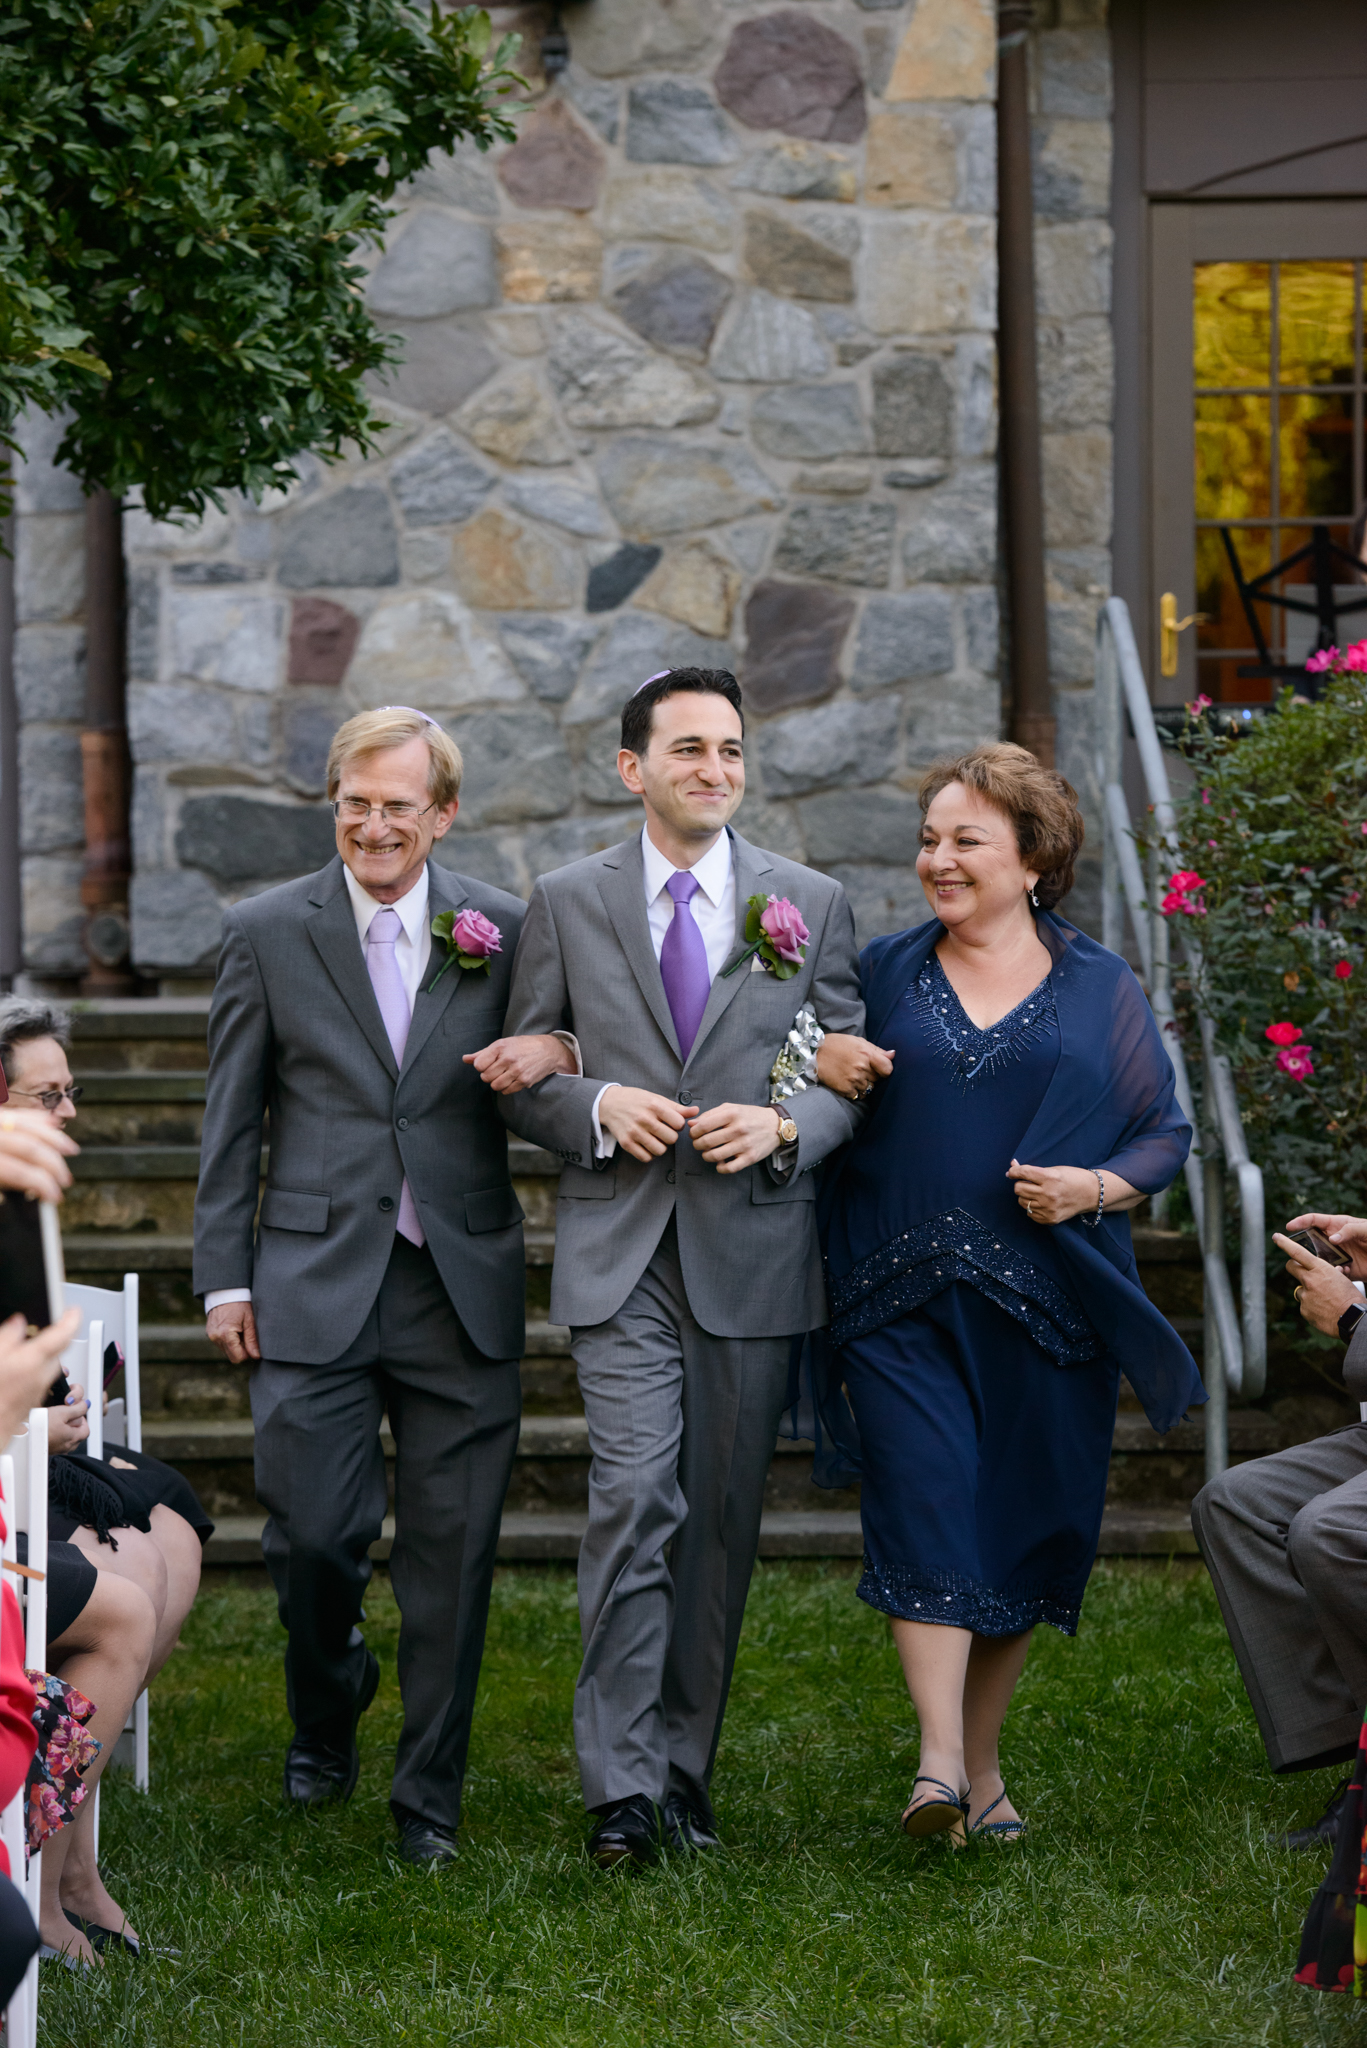 Katie & Eric´s Wedding by Romina Hendlin_013.jpg